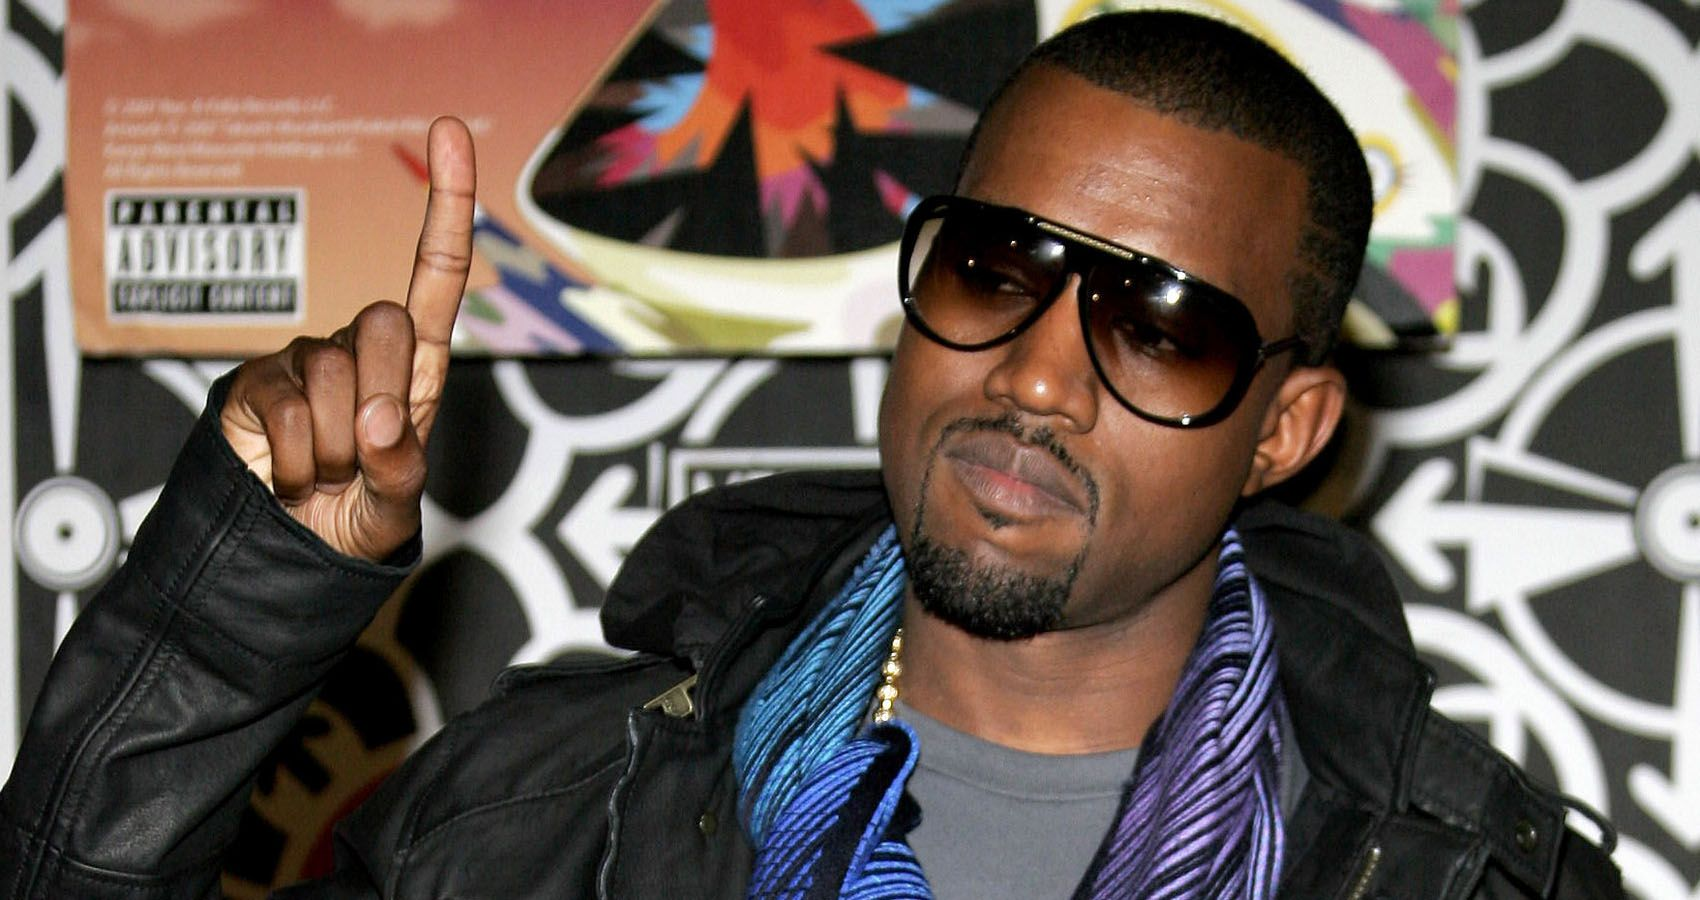 Yeezy Motors: Kanye West's Most Impressive Cars | TheRichest